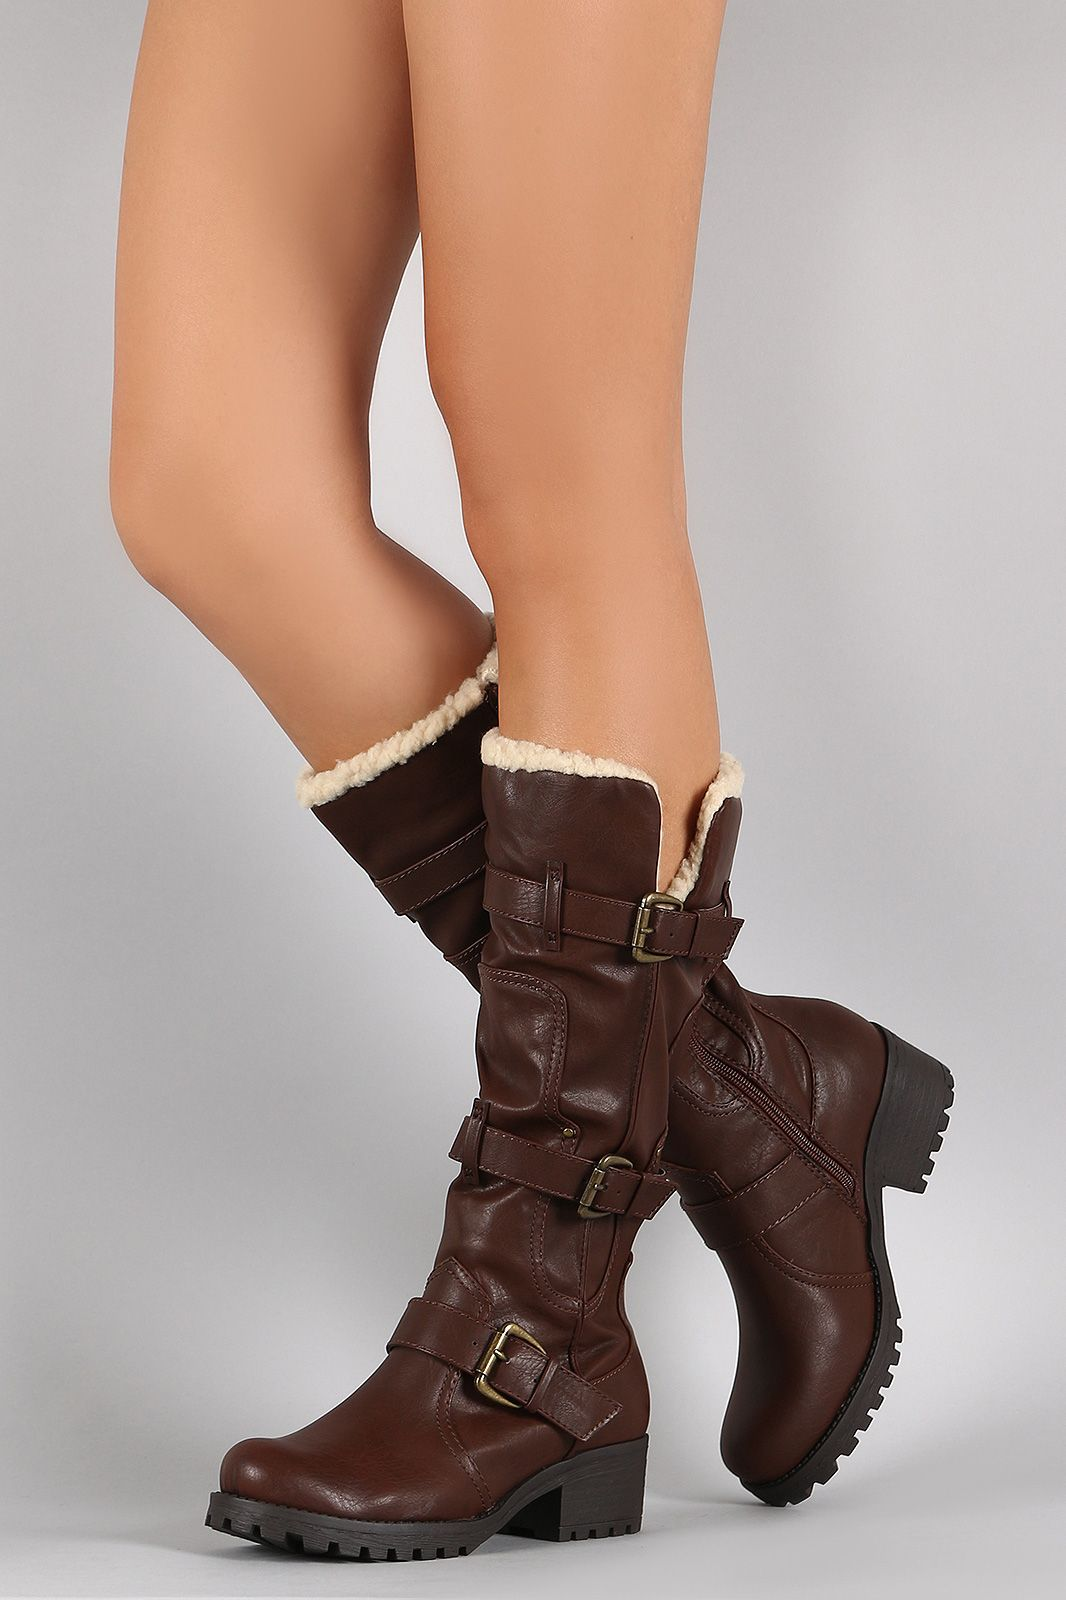 Free SH & Easy Returns! Shop Bamboo Buckled Strap Knee High Boots. These boots feature a round toe, triple buckles strap detail, and low block heel.